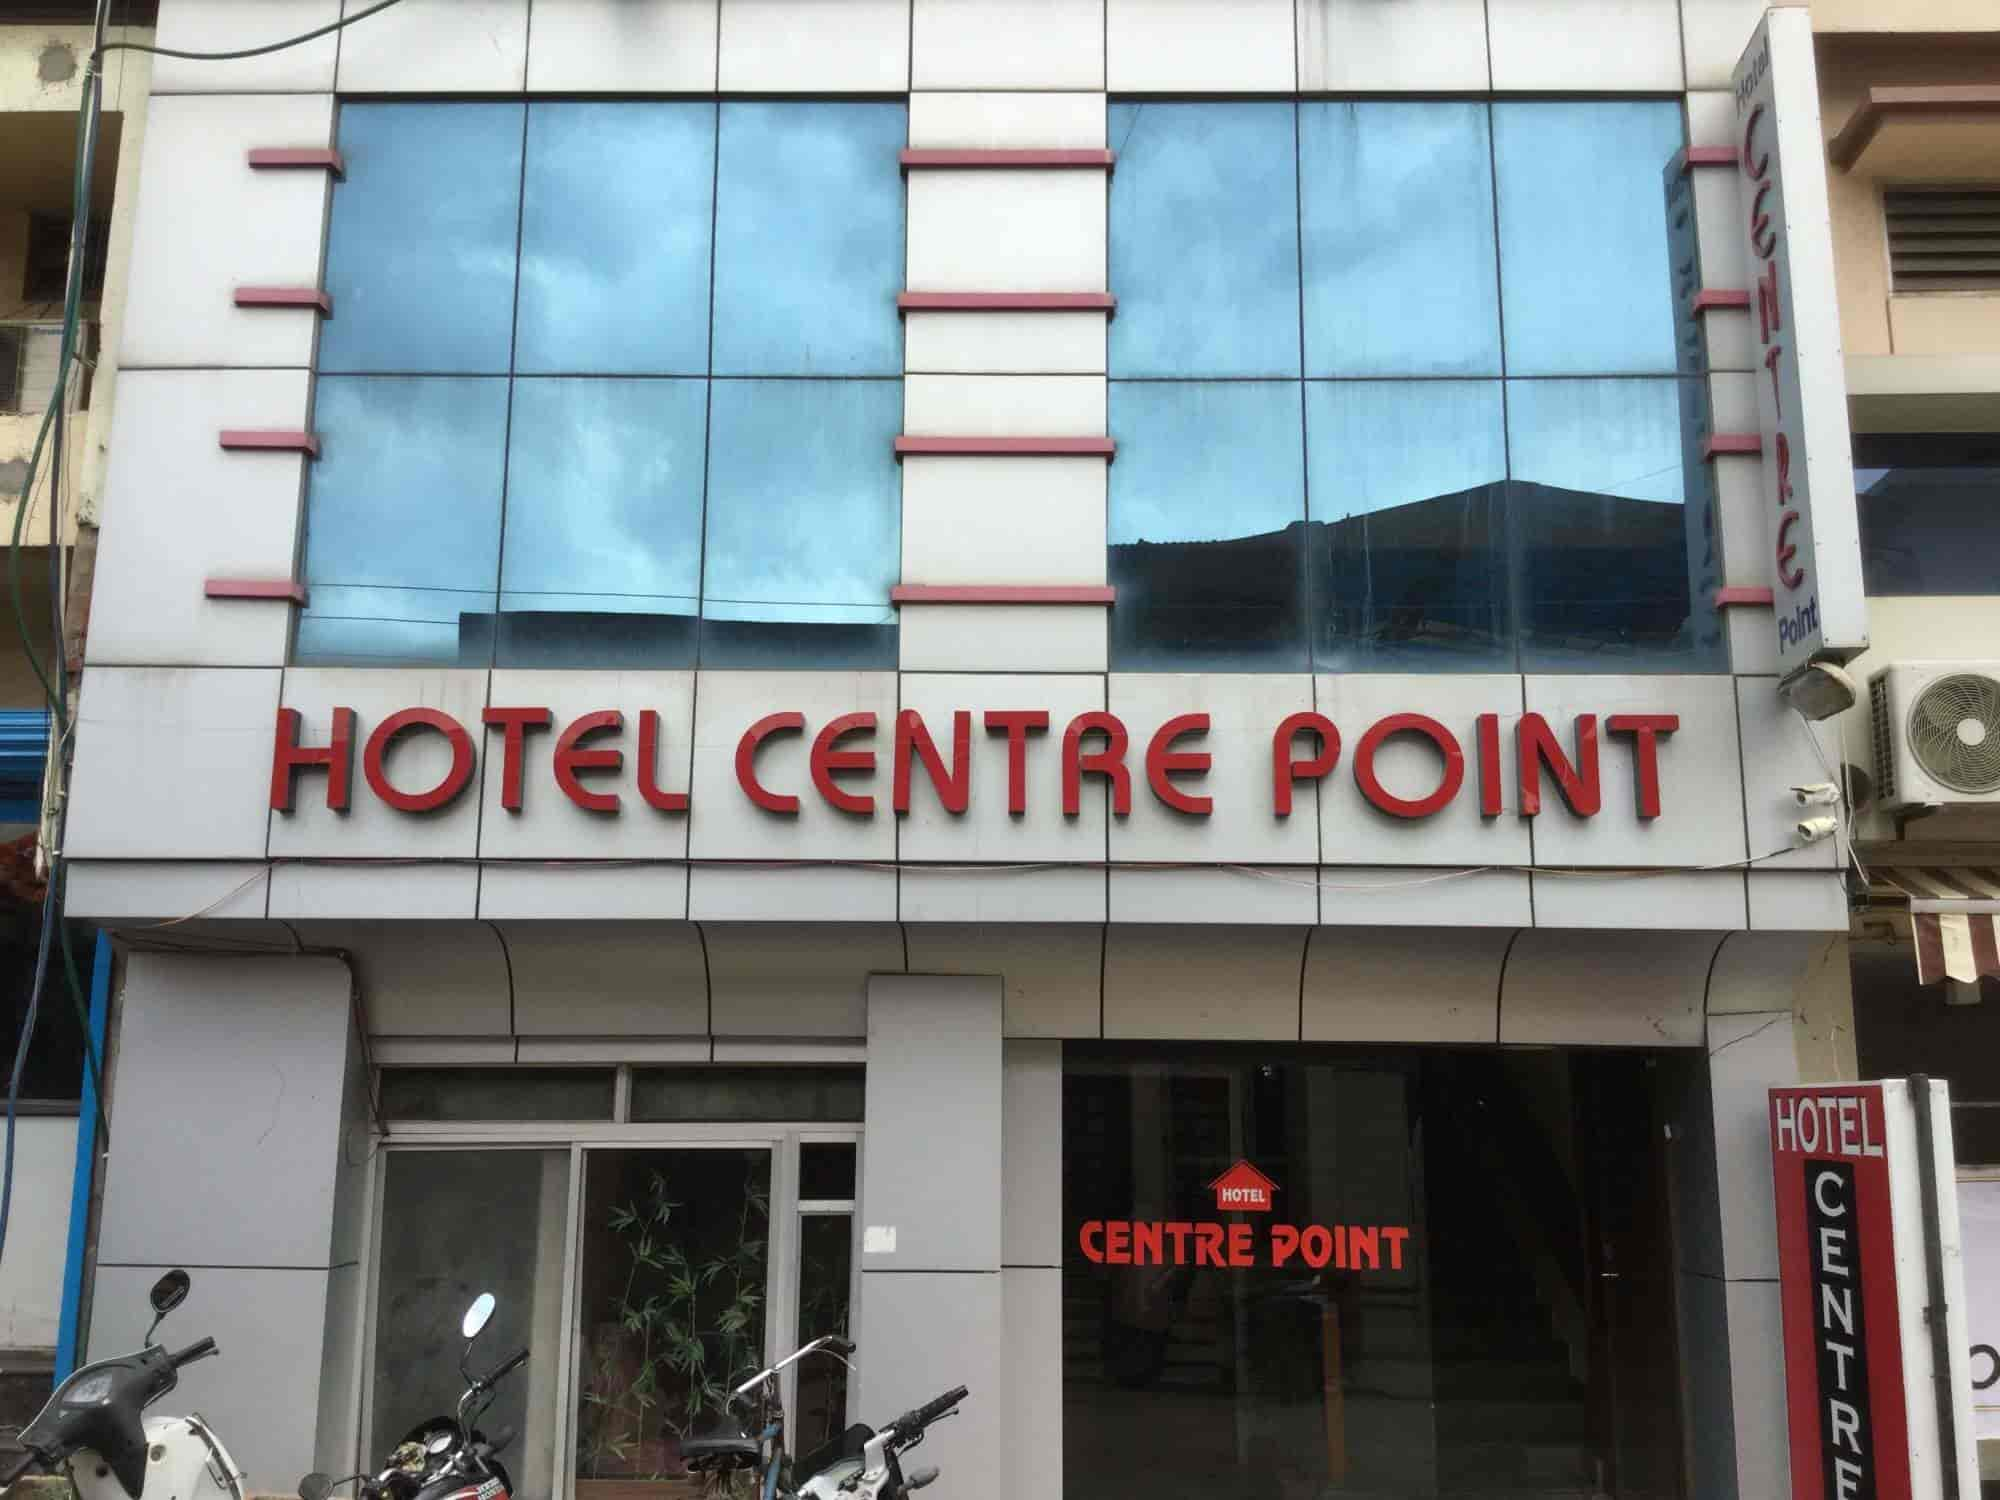 Front View of Hotel - Hotel Centre Point Images, Raipur Ho, Raipur-Chhattisgarh - Hotels